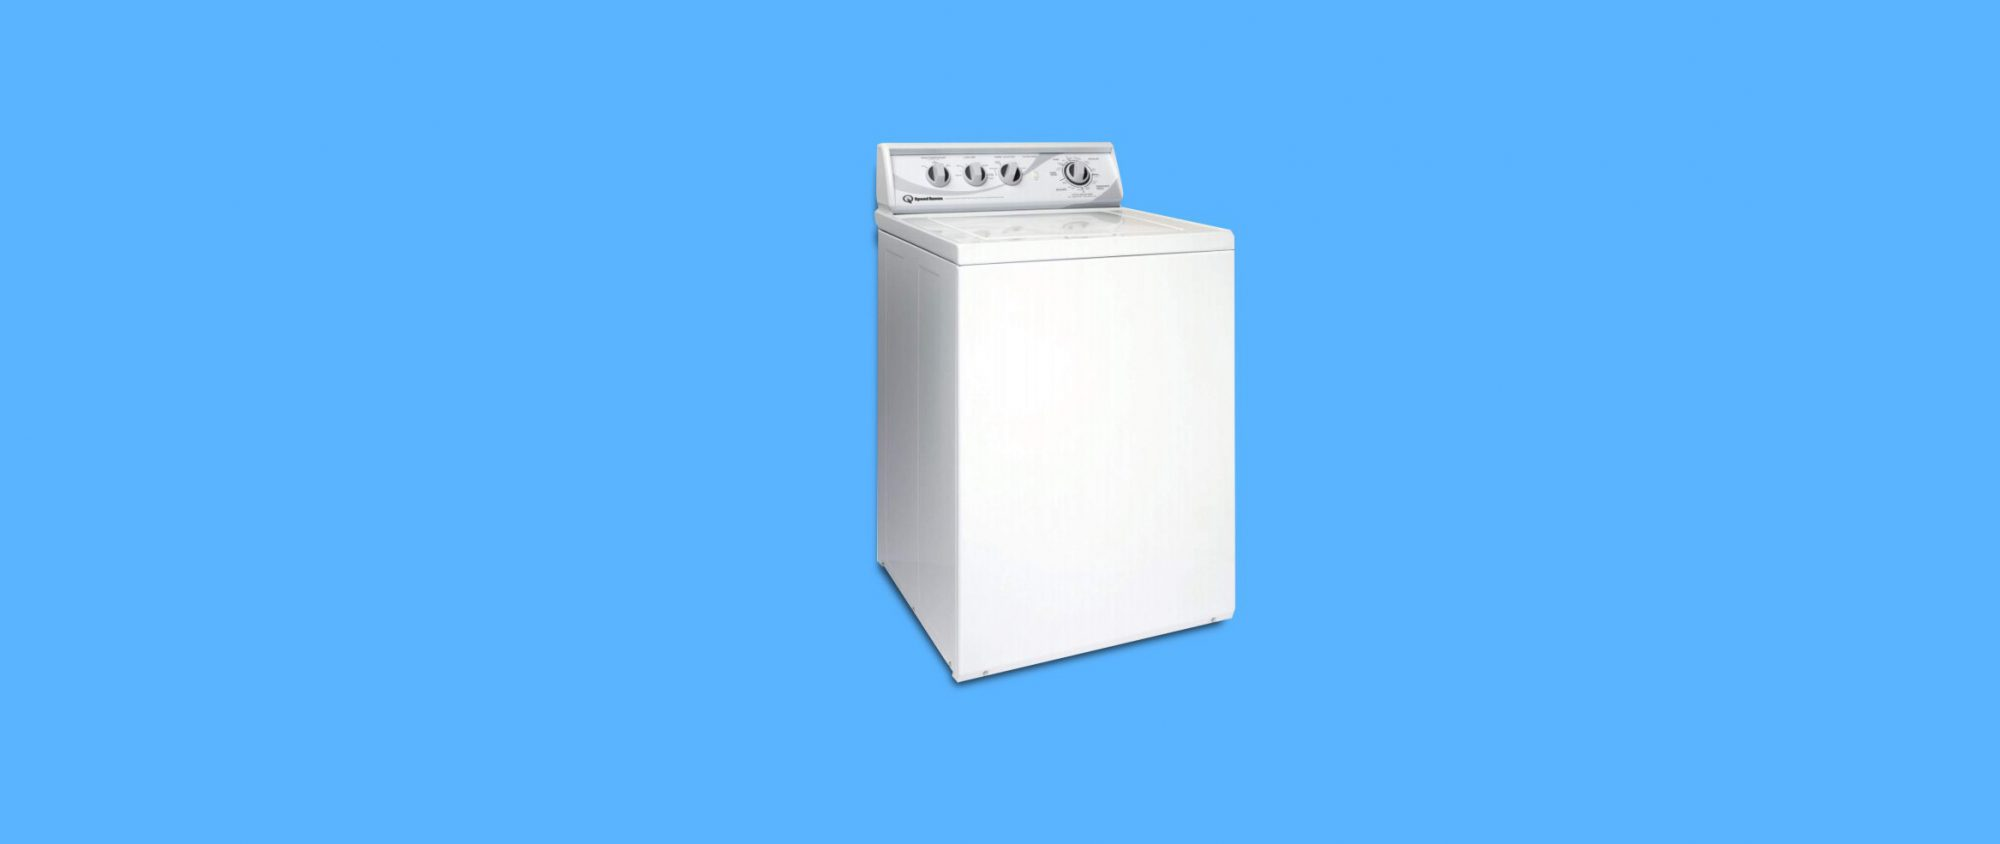 This American-Made Washing Machine Is So Good It's Got a Cult Following